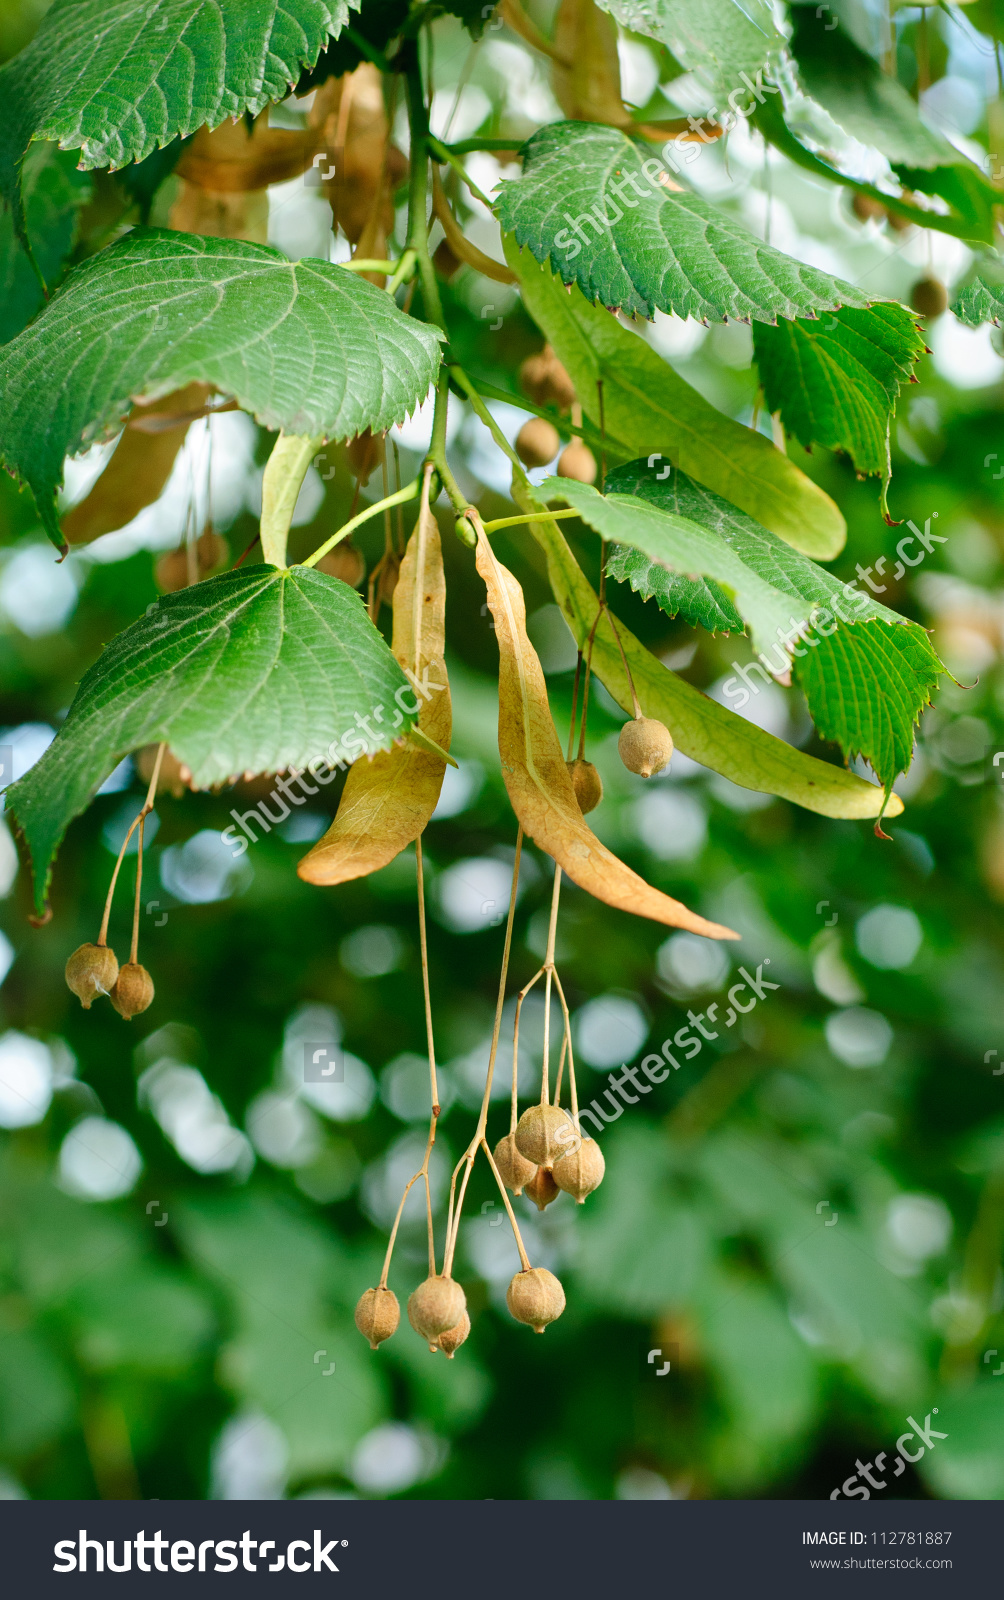 Linden Tree Seeds Closeup On Green Leaves Background Stock Photo.